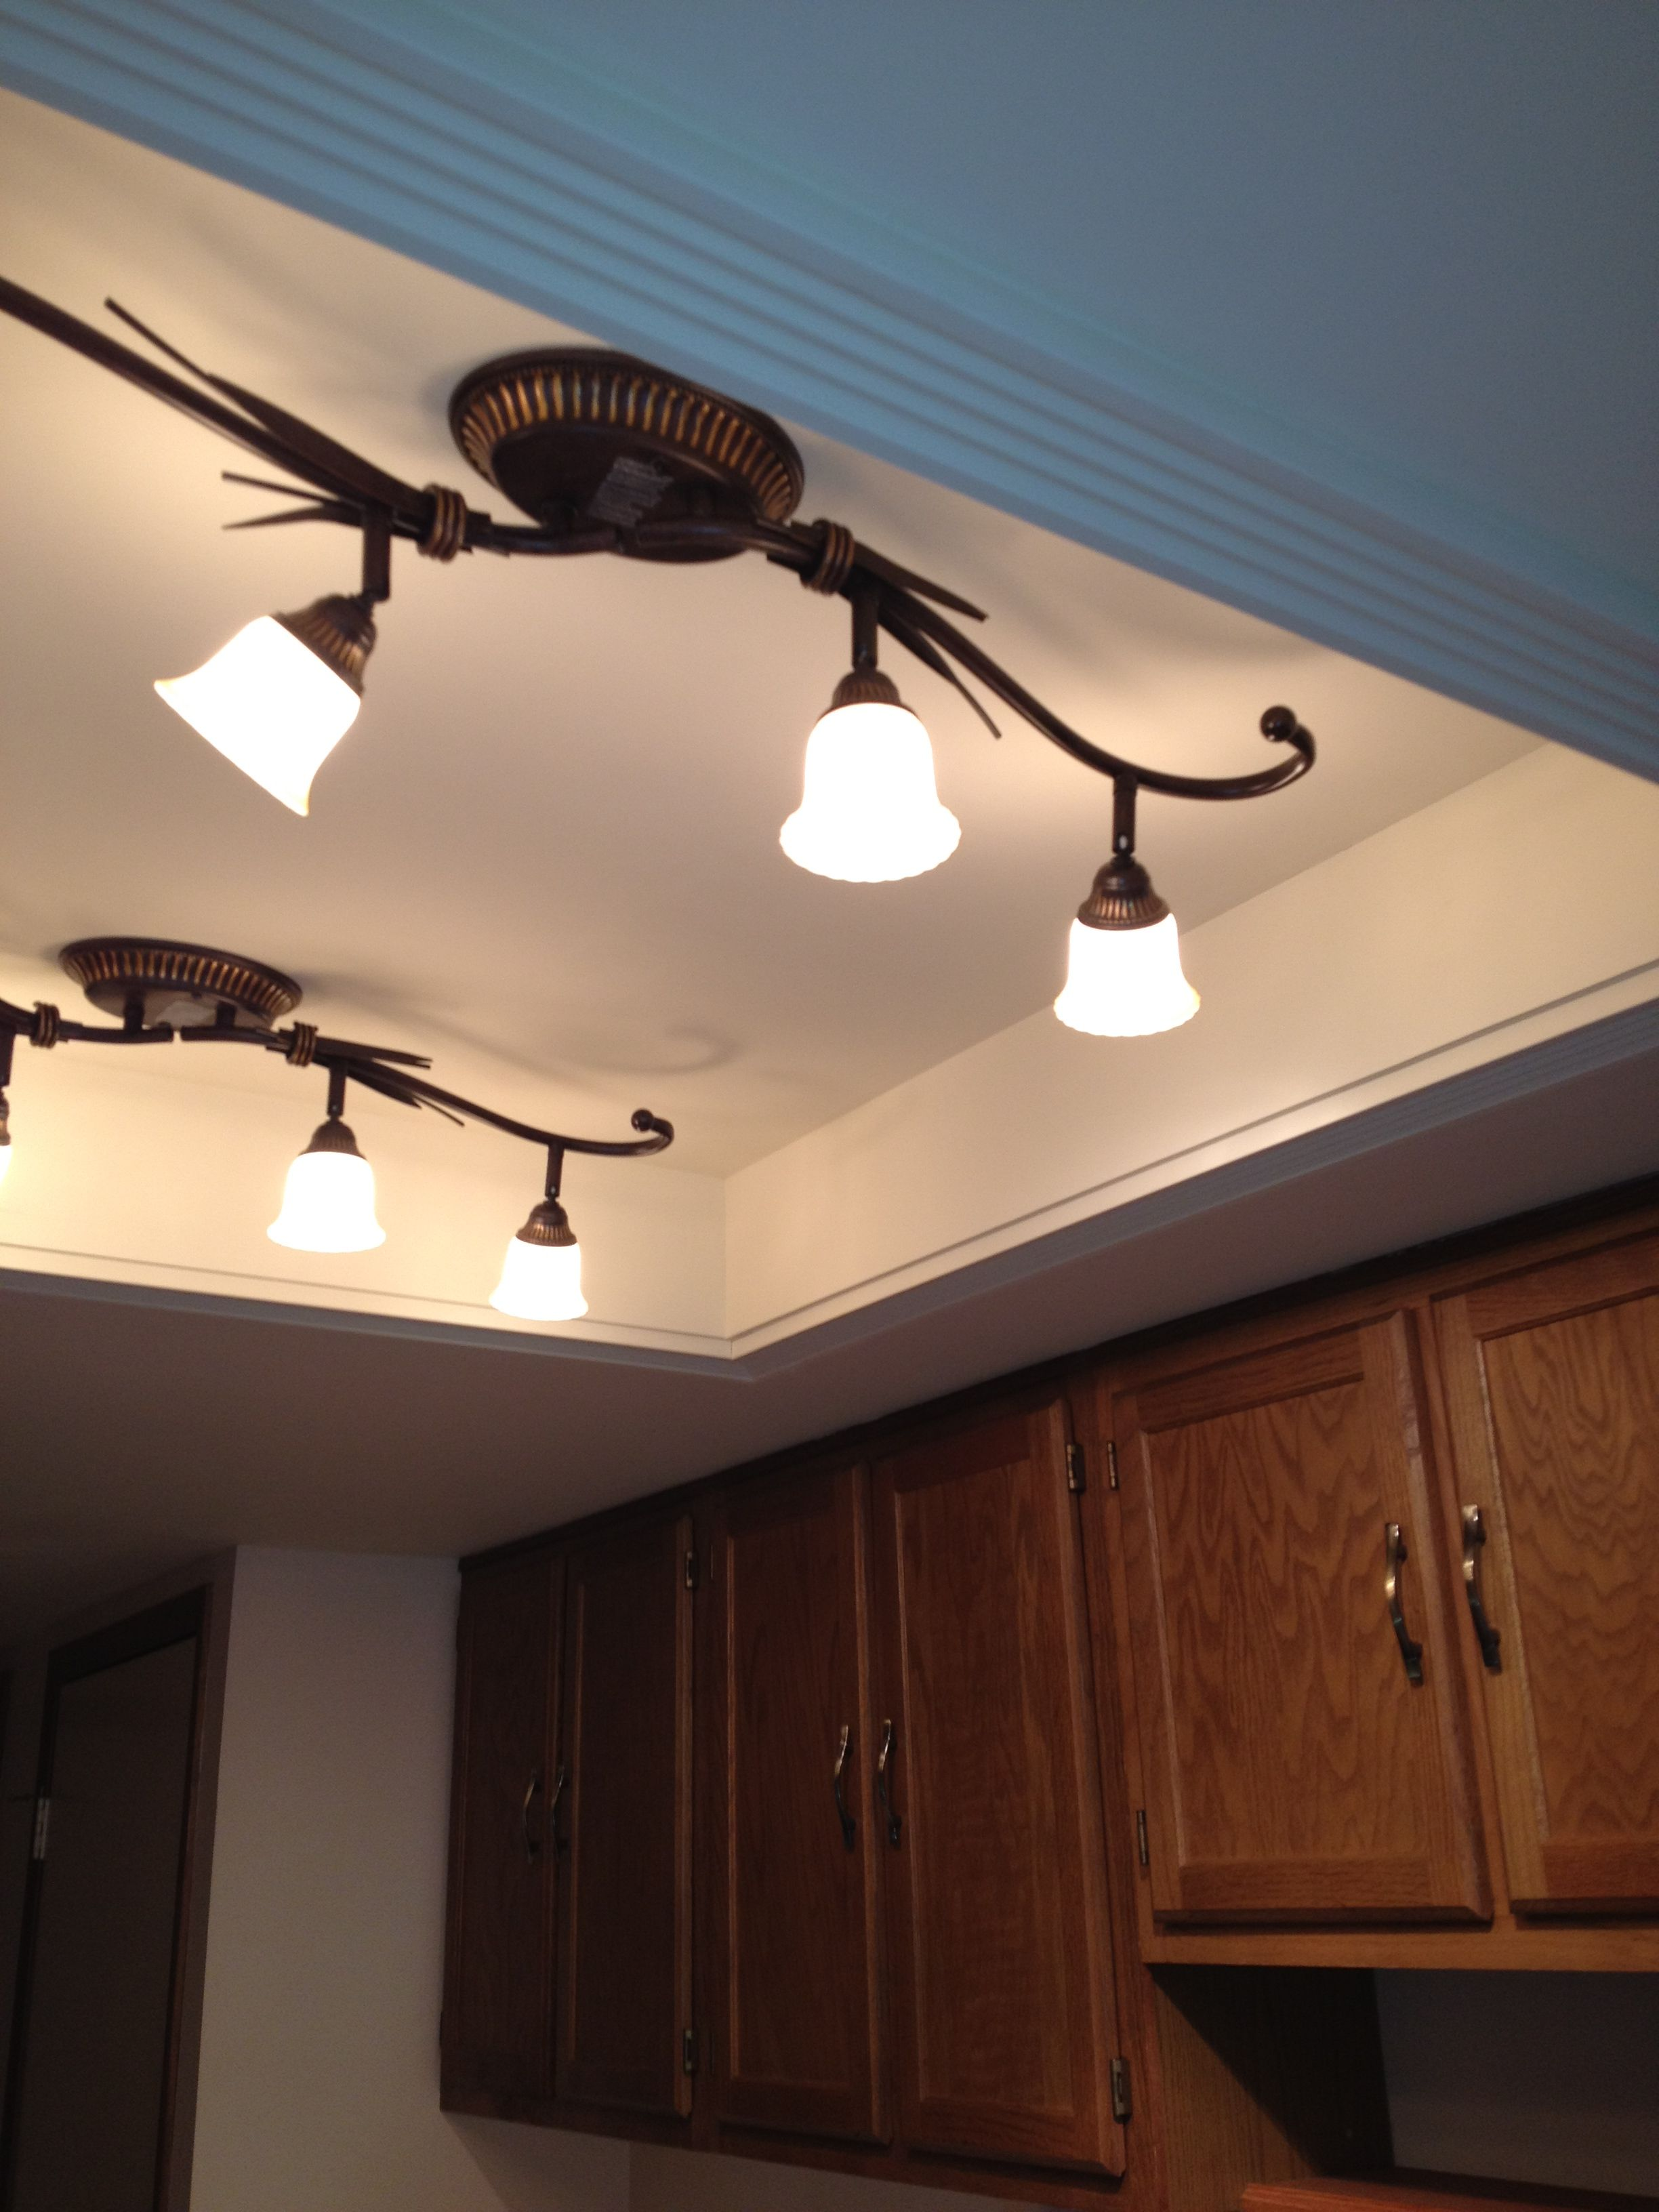 Convert that ugly recessed, fluorescent ceiling lighting in your kitchen to a beautiful trayed